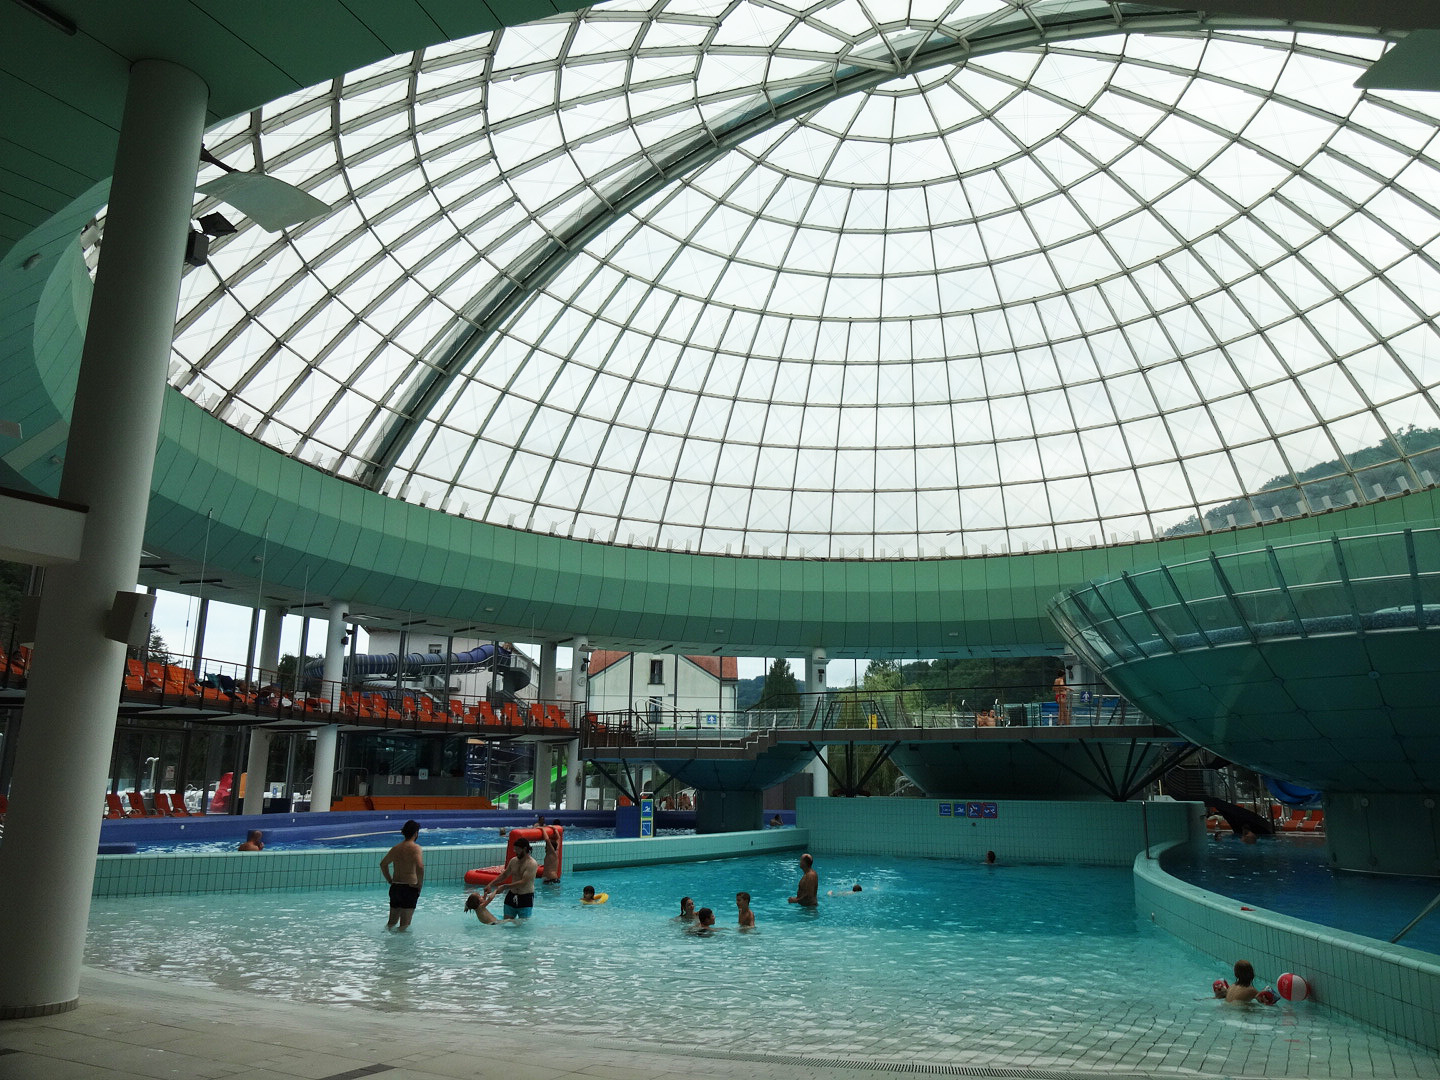 The swimming pool underneath the glass dome.